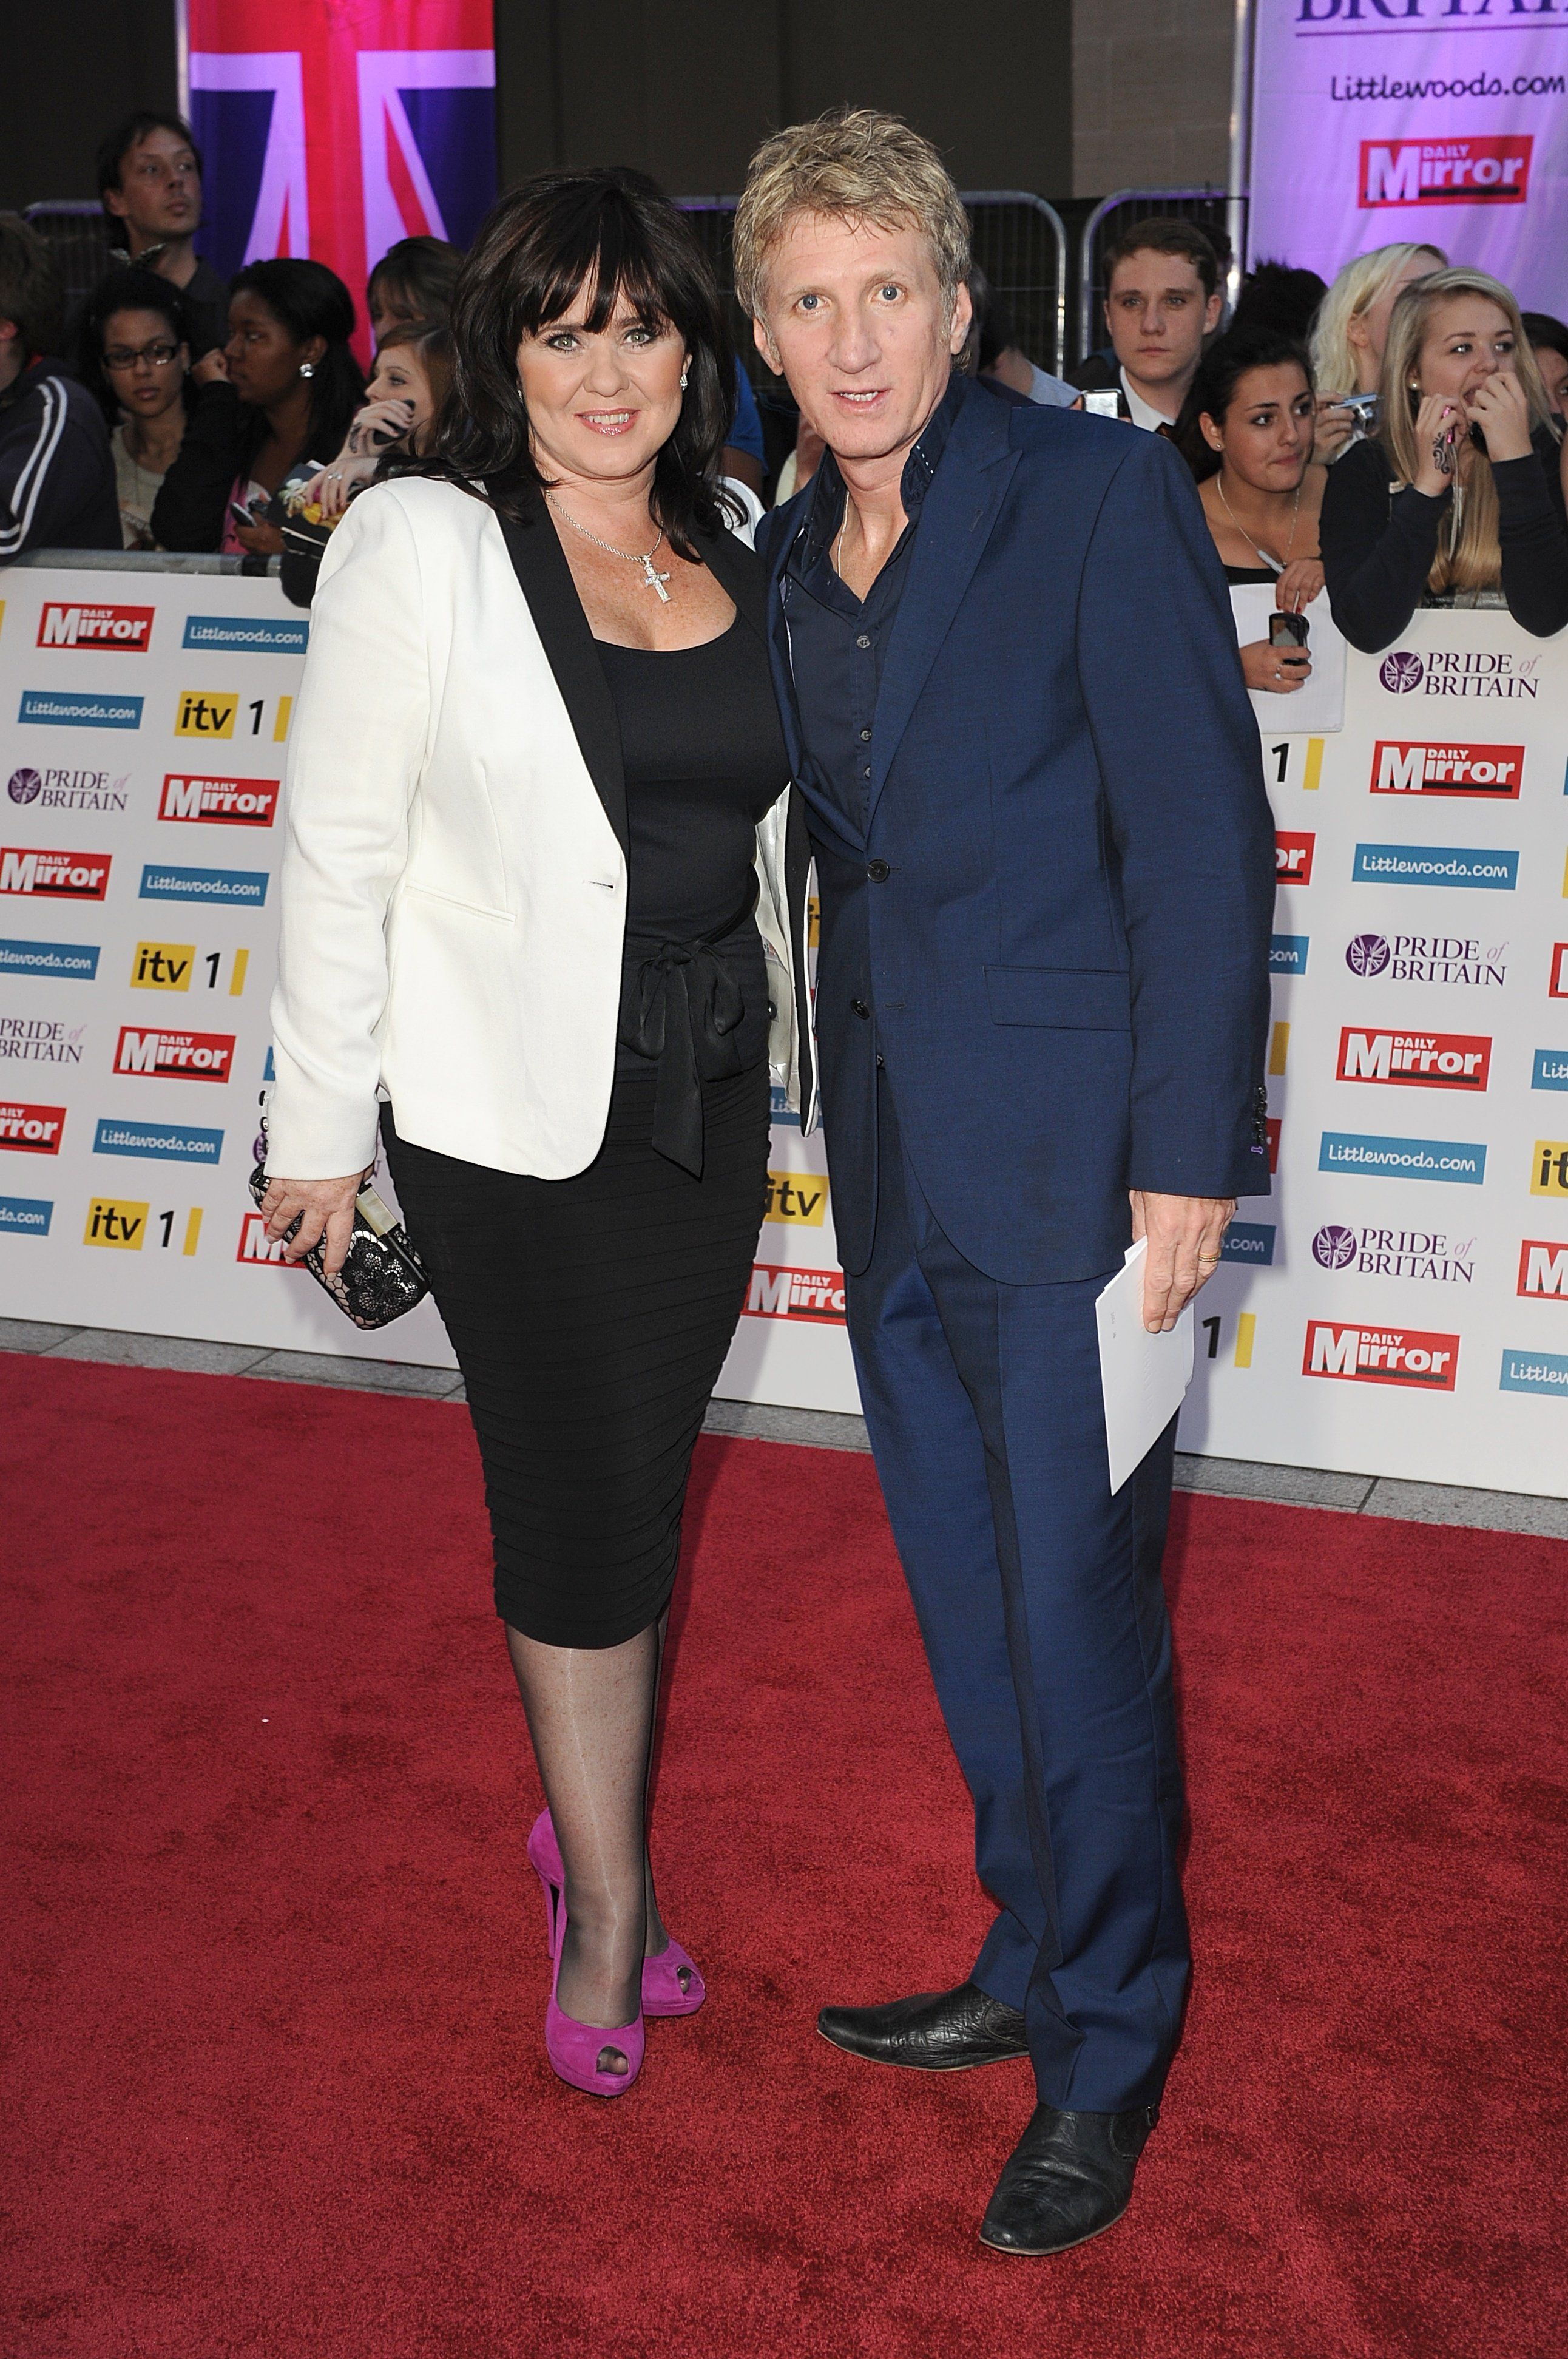 'Loose Women' Star Coleen Nolan To Divorce Second Husband Ray